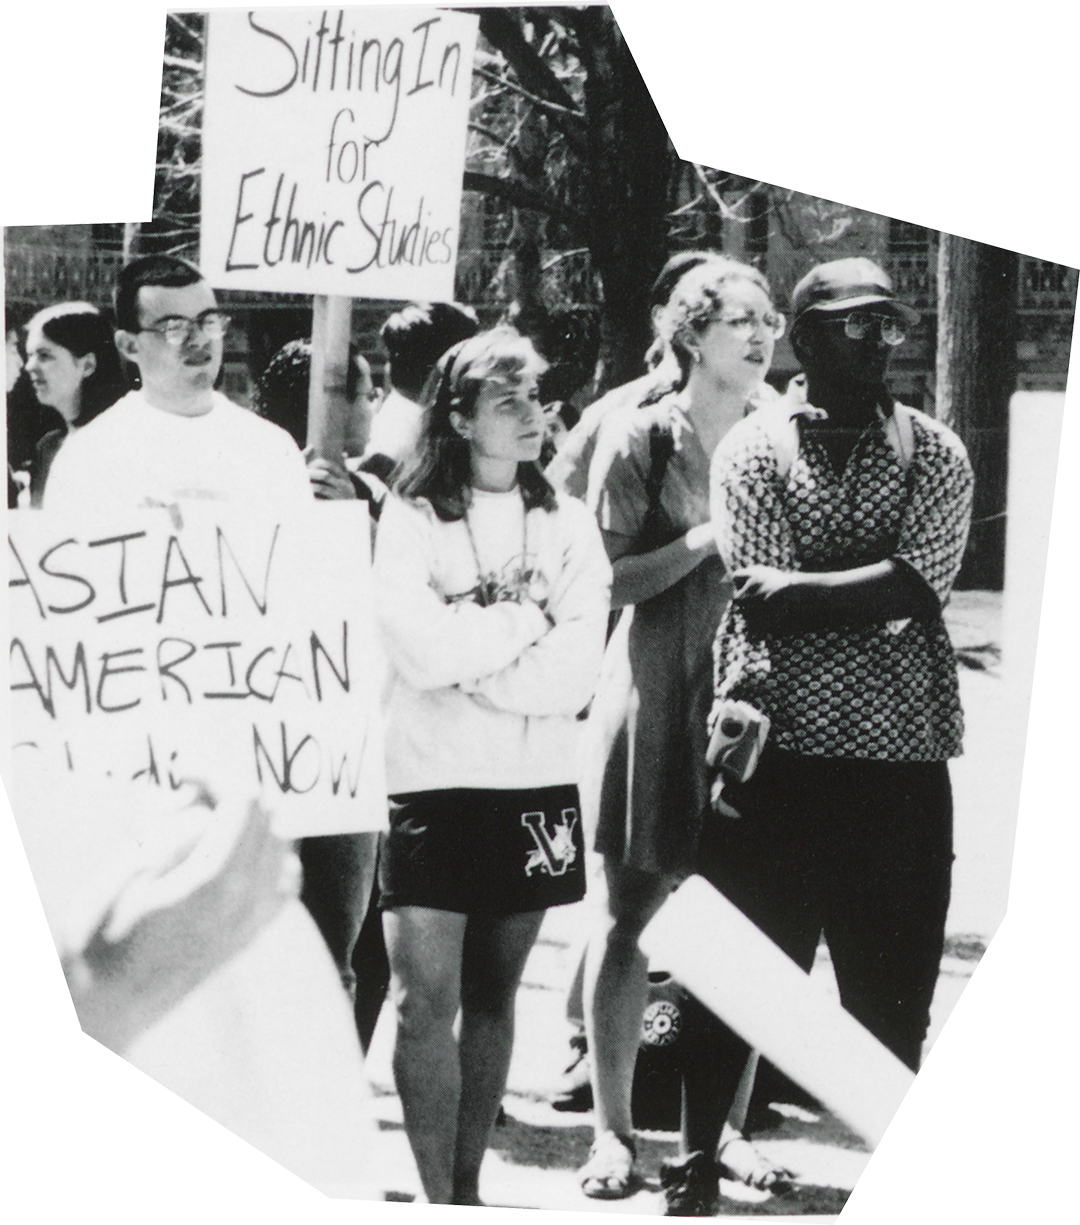 Princetonians engaging in activism over the years